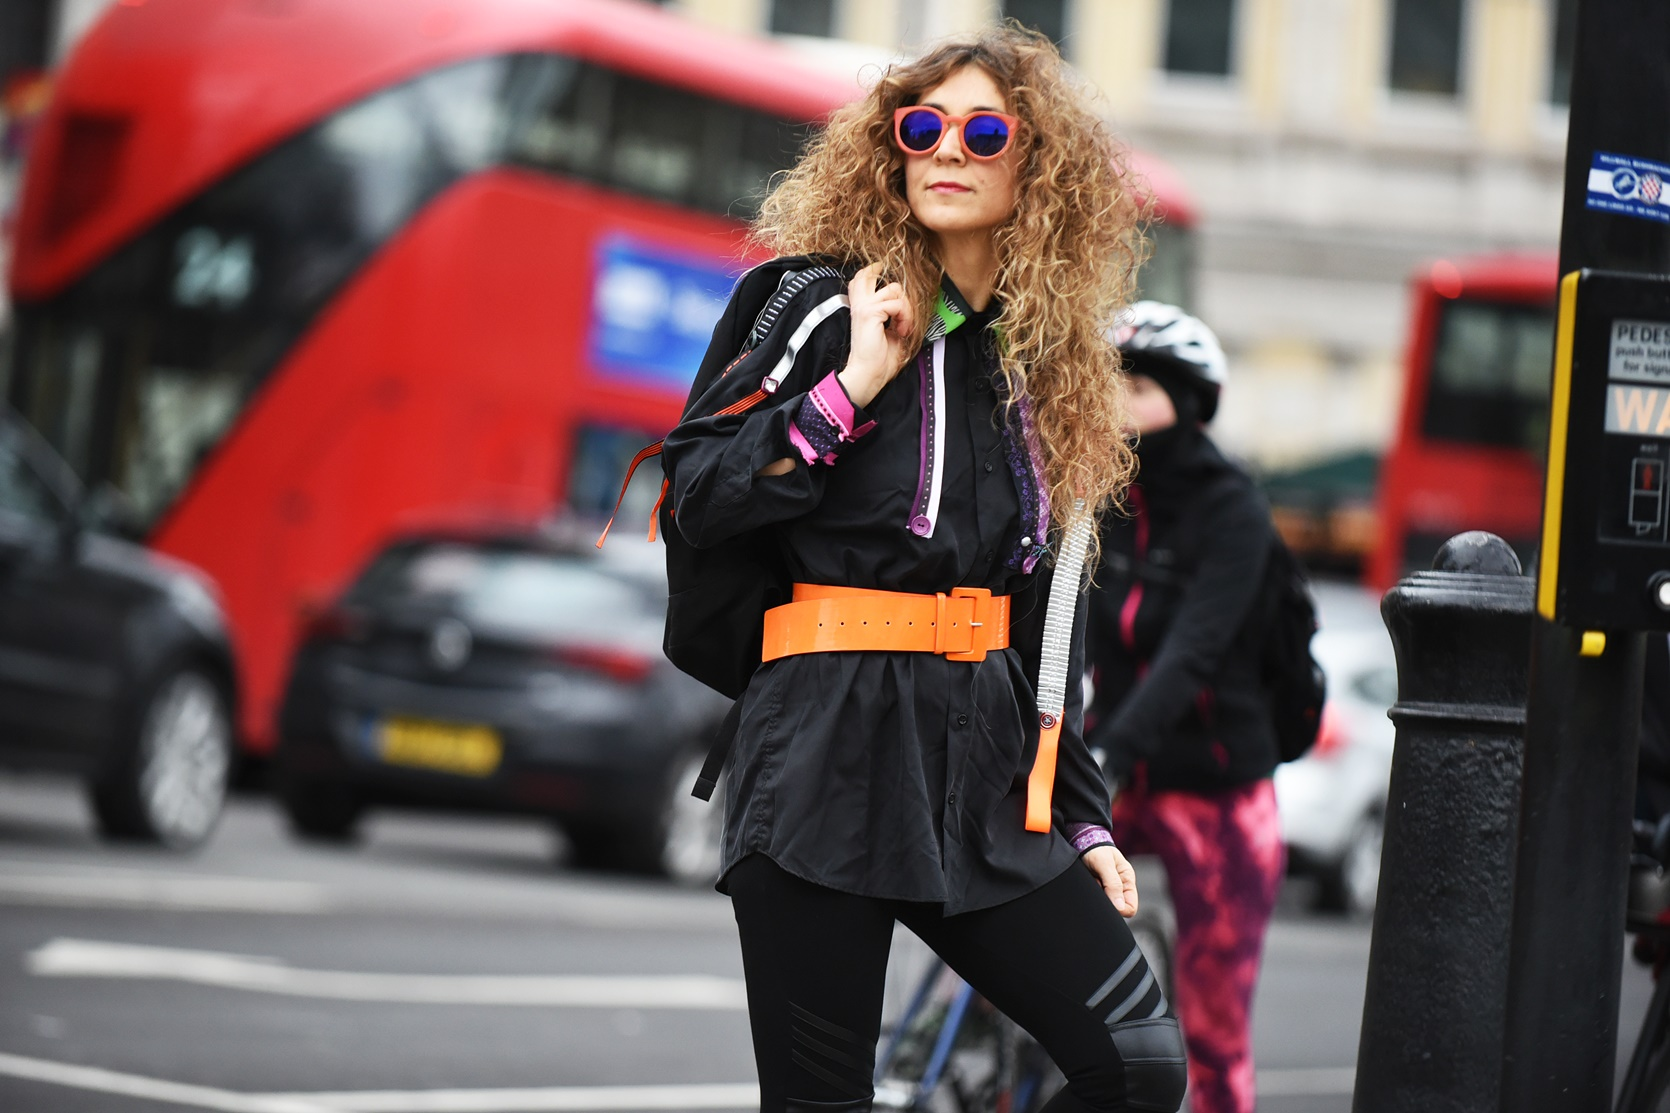 London Street Style of One the new Silk shirt, fashion project Silkline Mouhtaridis with Think Feel Discover at LFW Feb18